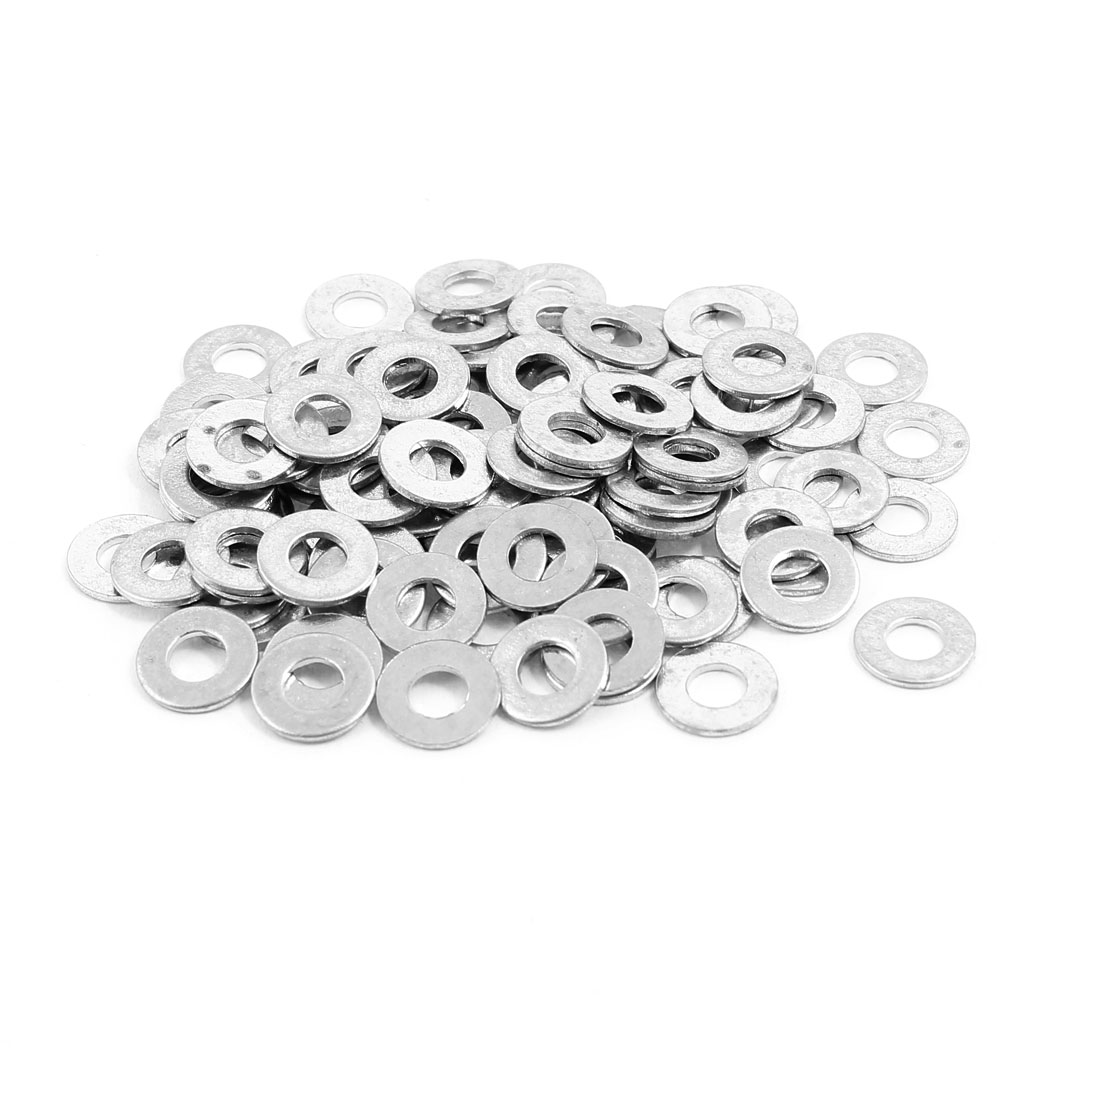 100pcs 4x9mm Stainless Steel Flat Washer Fastener Plain Spacer Gasket for Screw Bolt